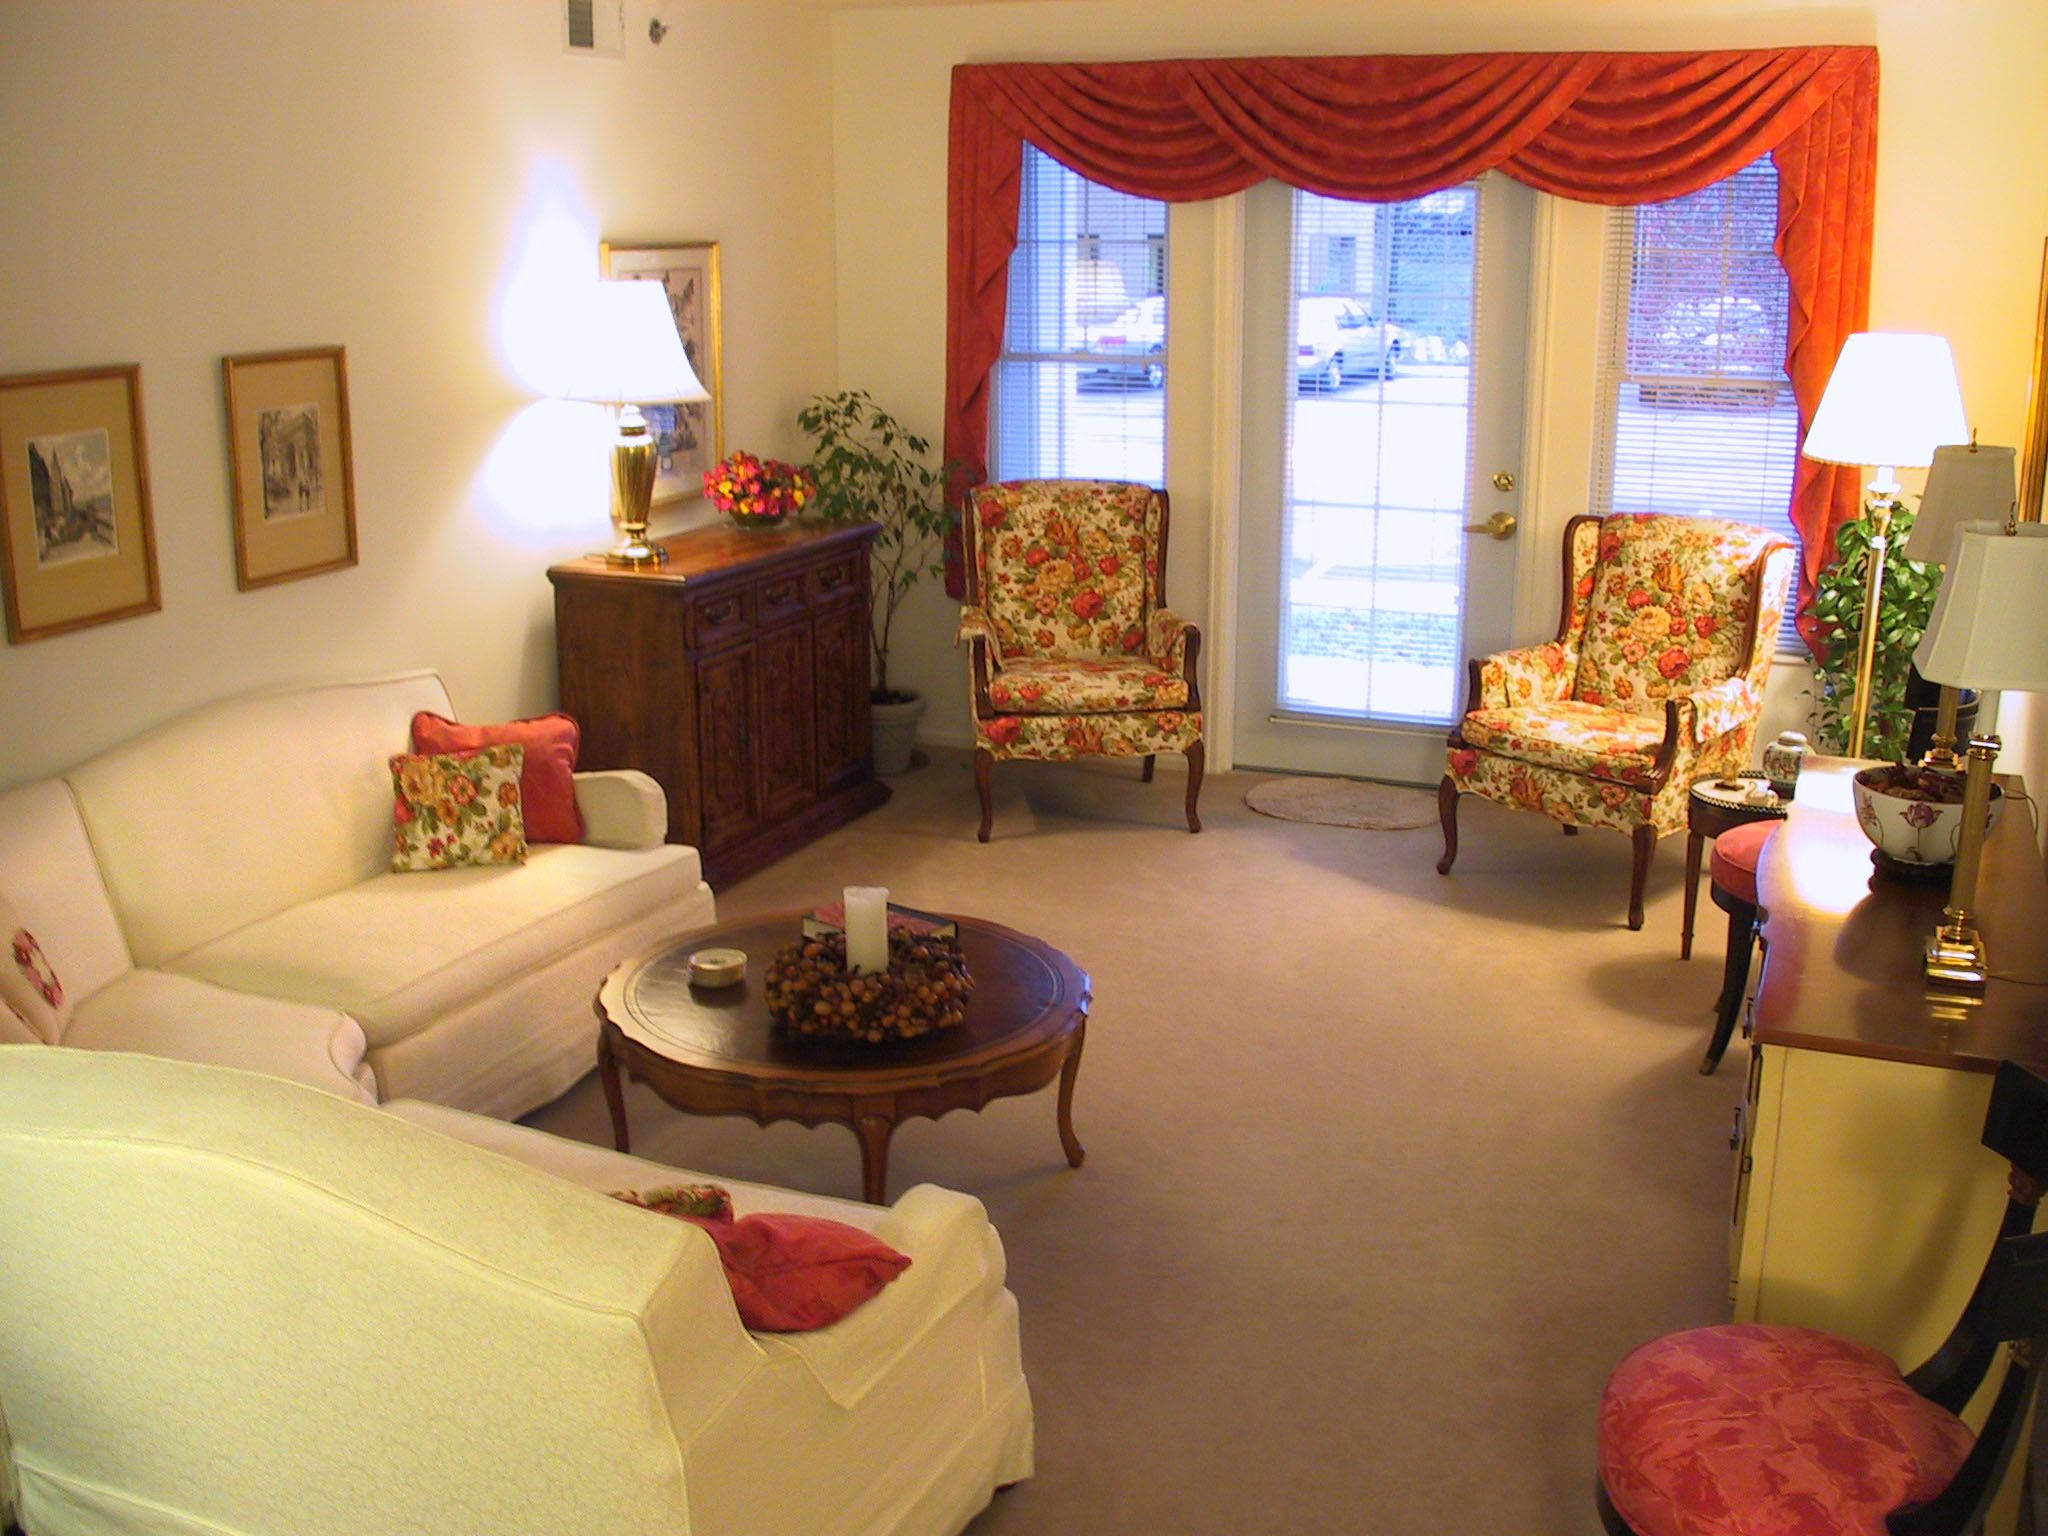 Independent Living Room At Laclede Groves Senior In St Louis Missouri